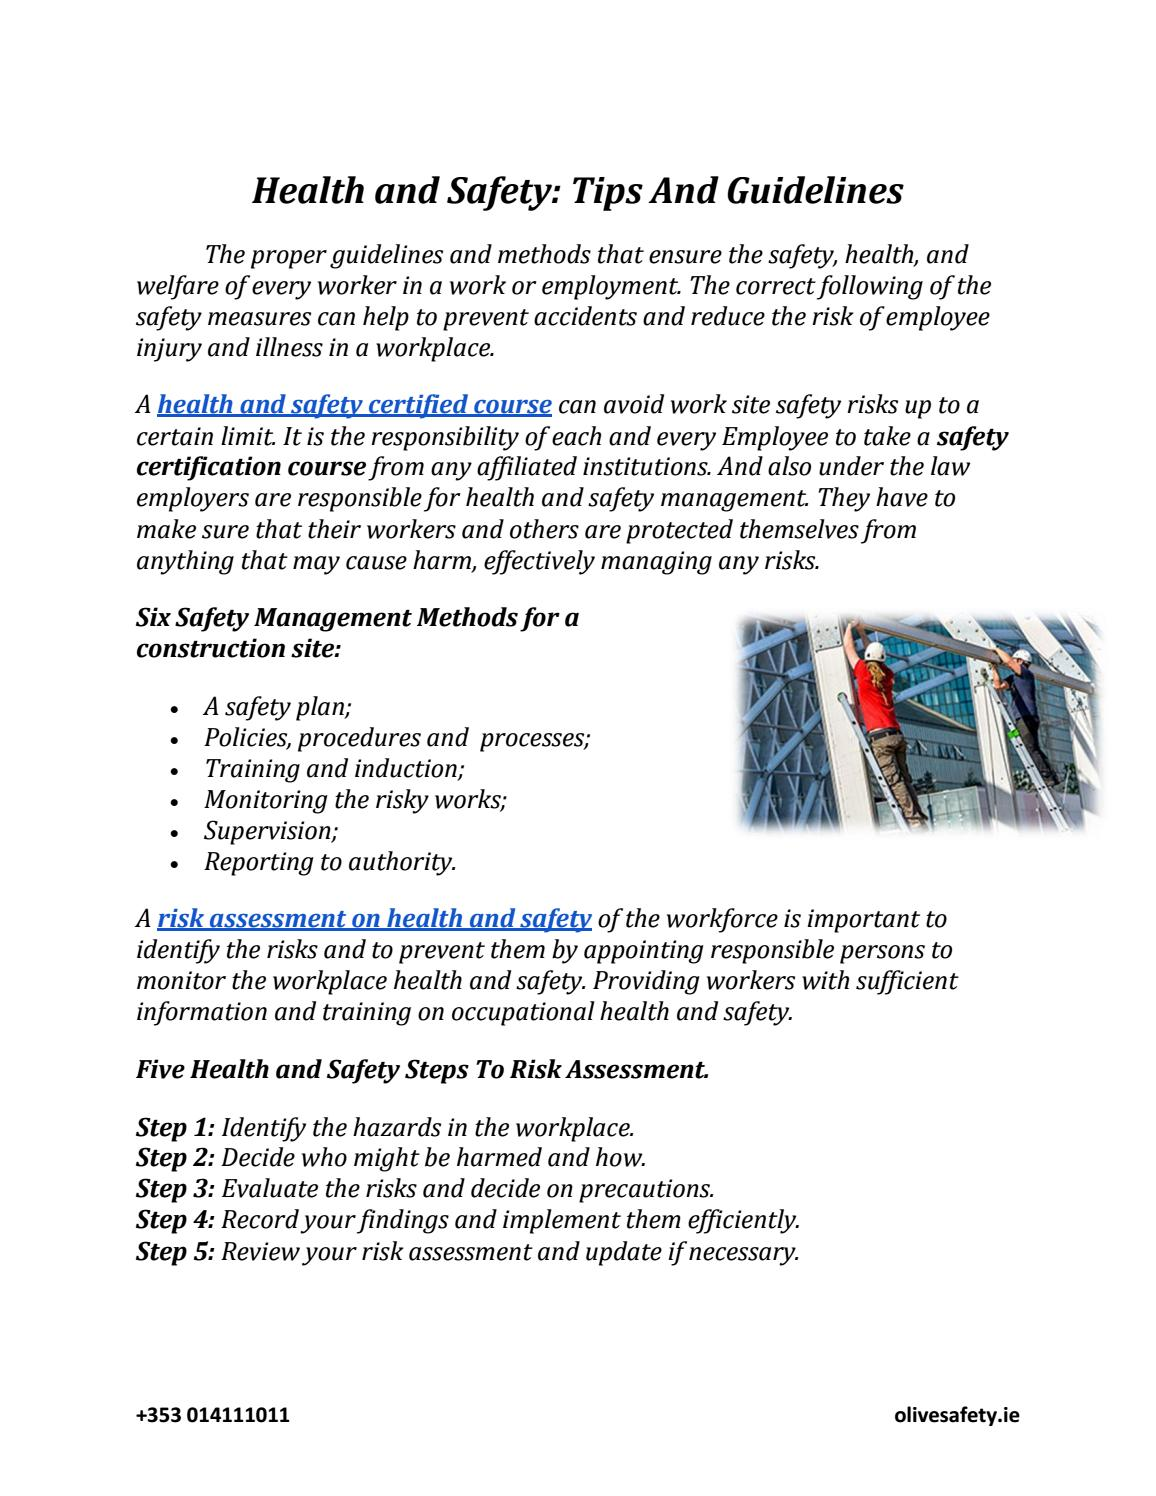 Necessary measures for occupational safety at work